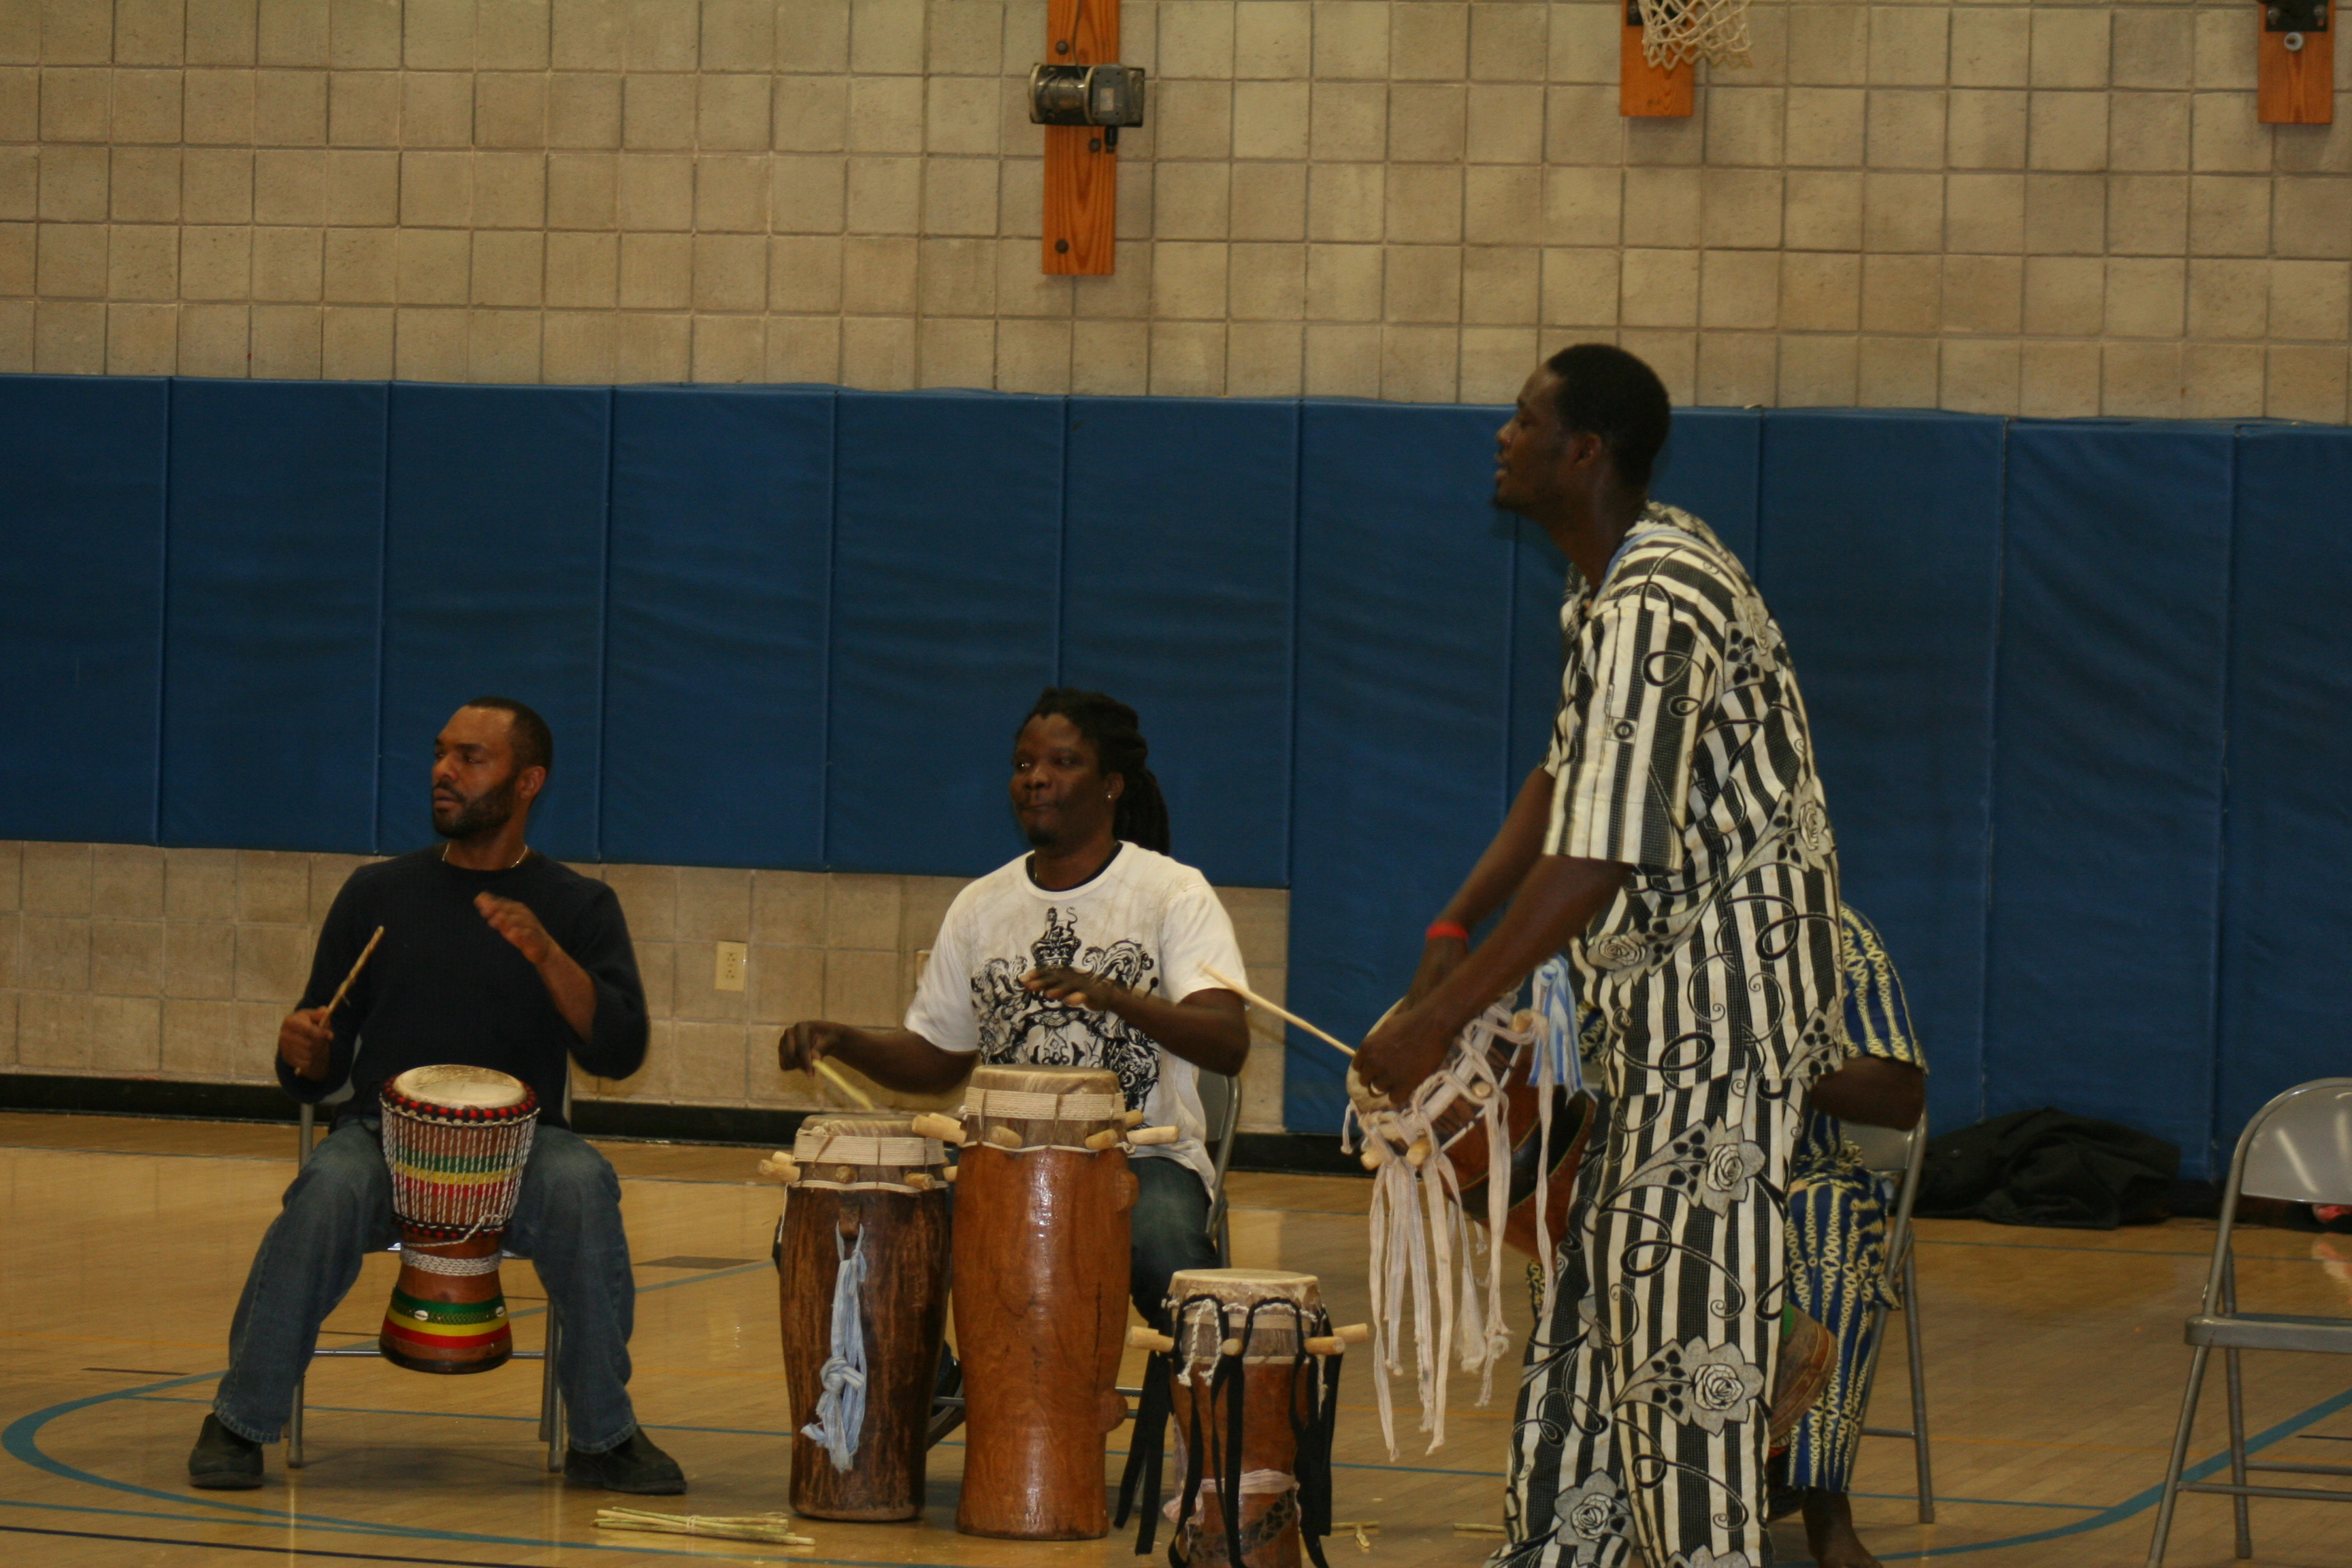 Lamine Toure joins the drummers.